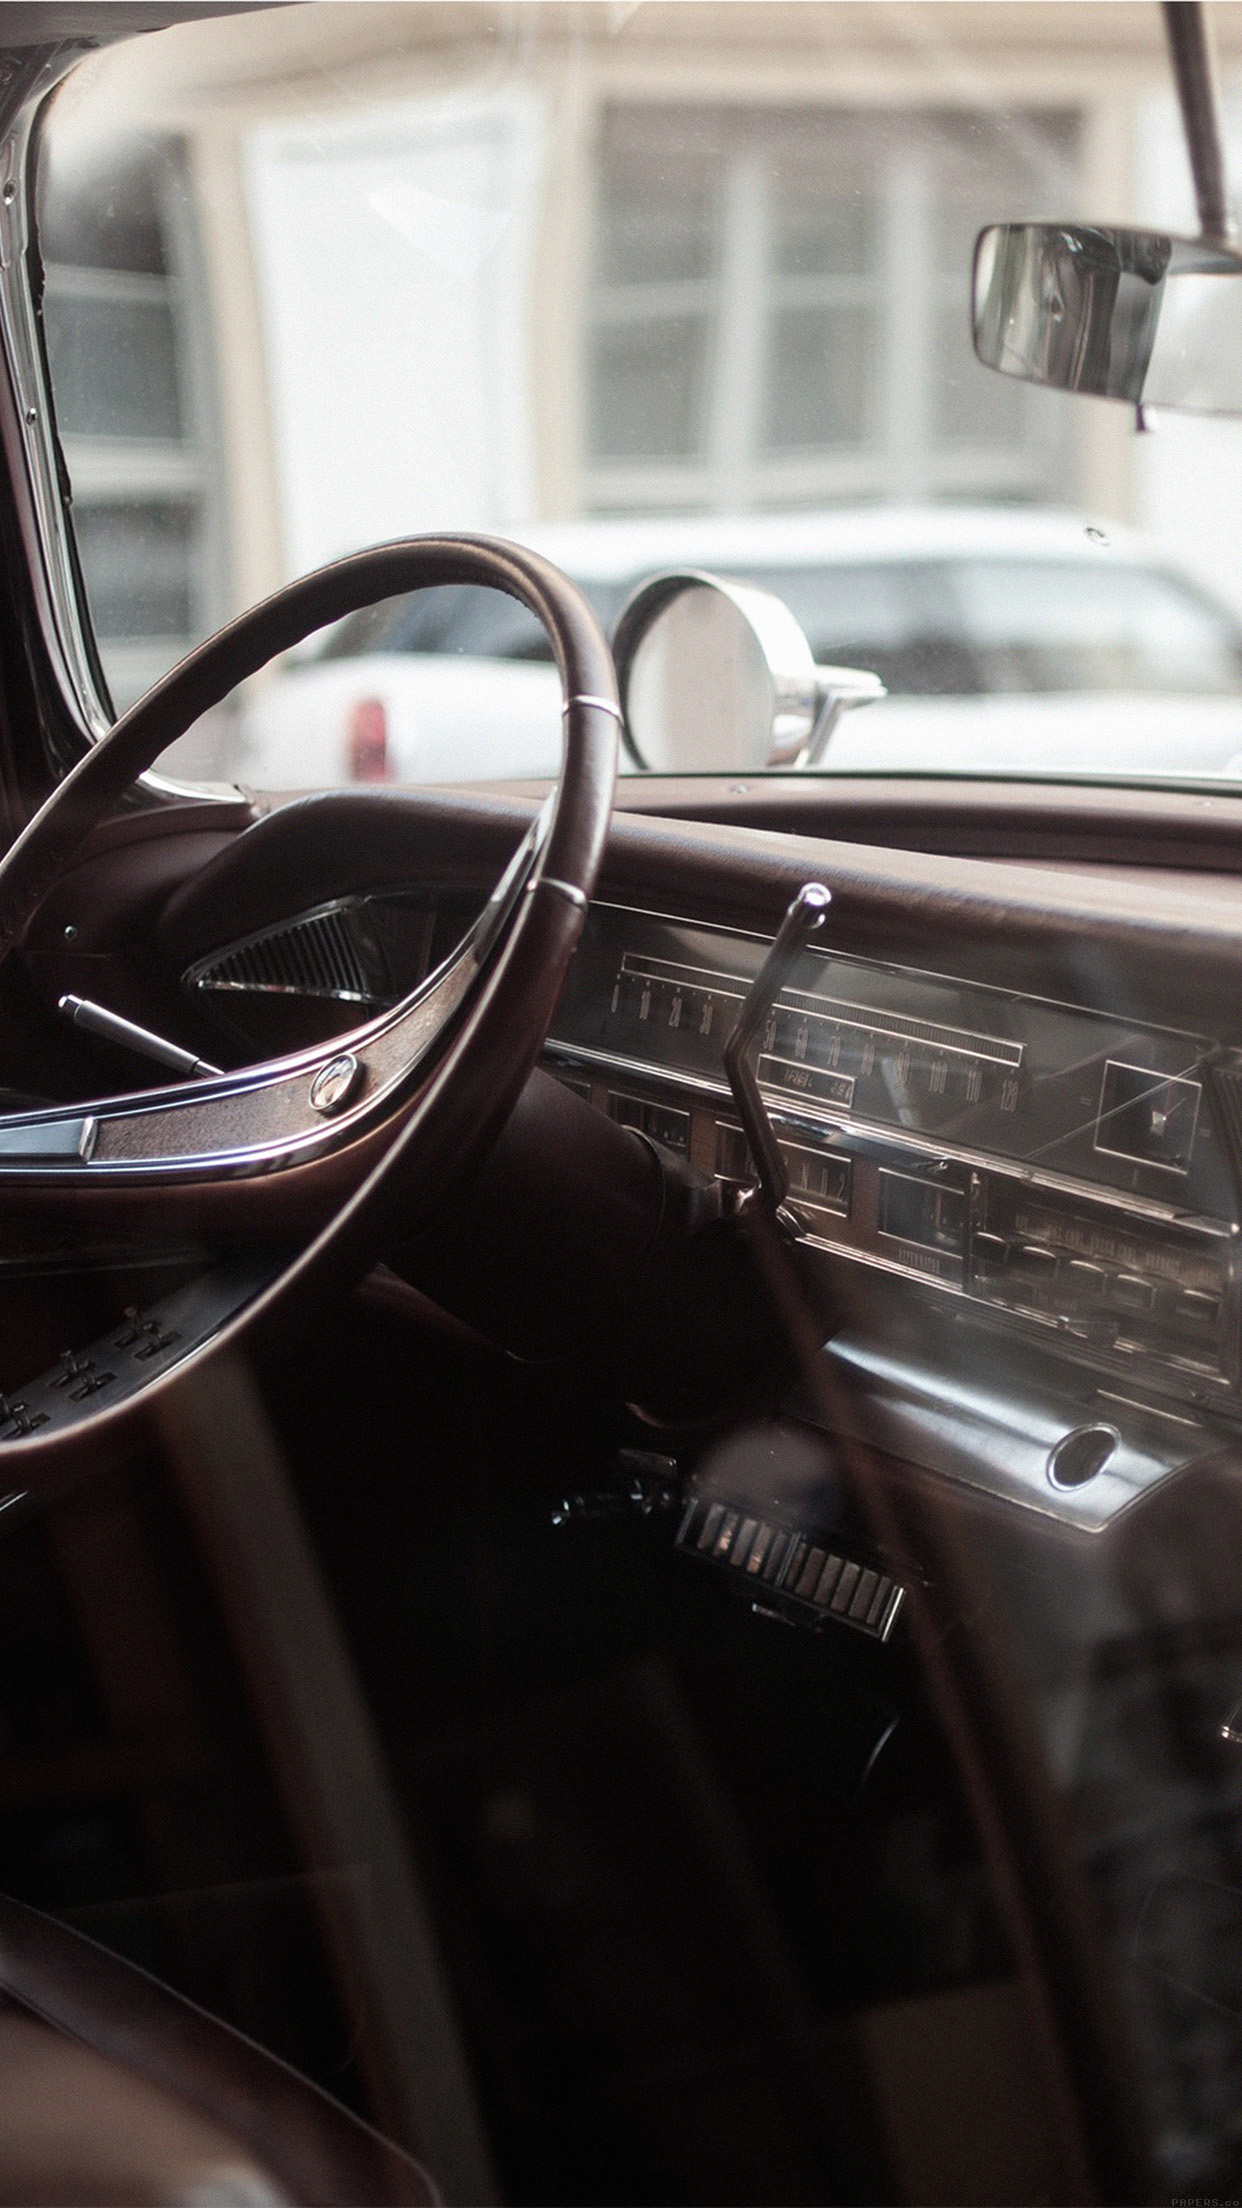 Iphone7papers Mn75 Driver Seat By David Marcu